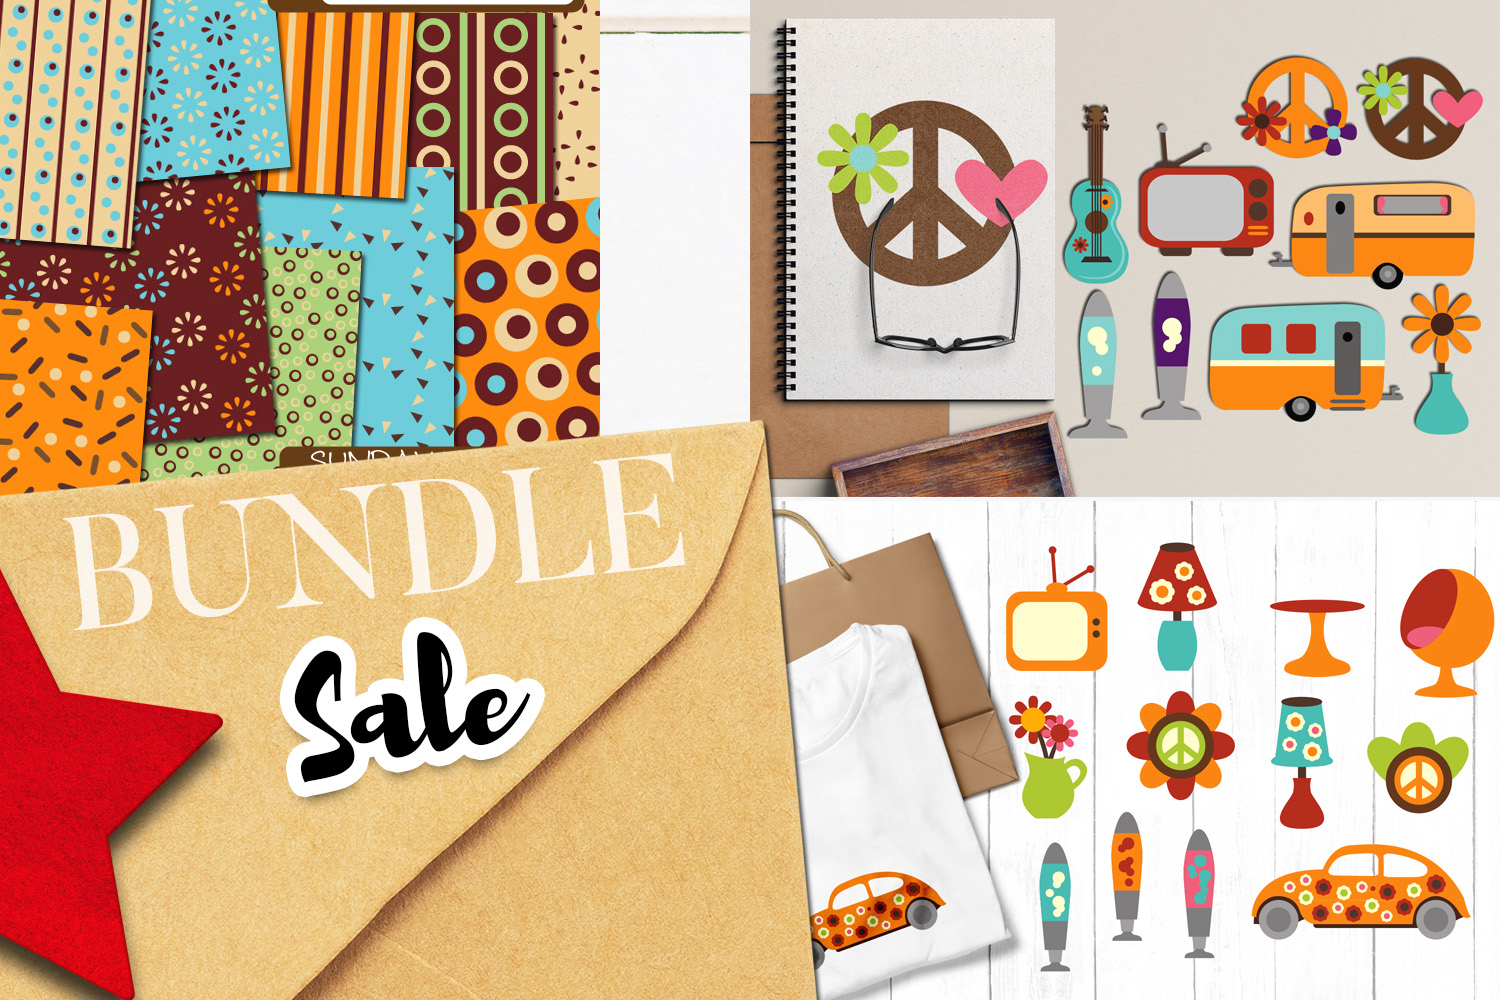 Retro 60s 70s life clip art illustrations bundle.